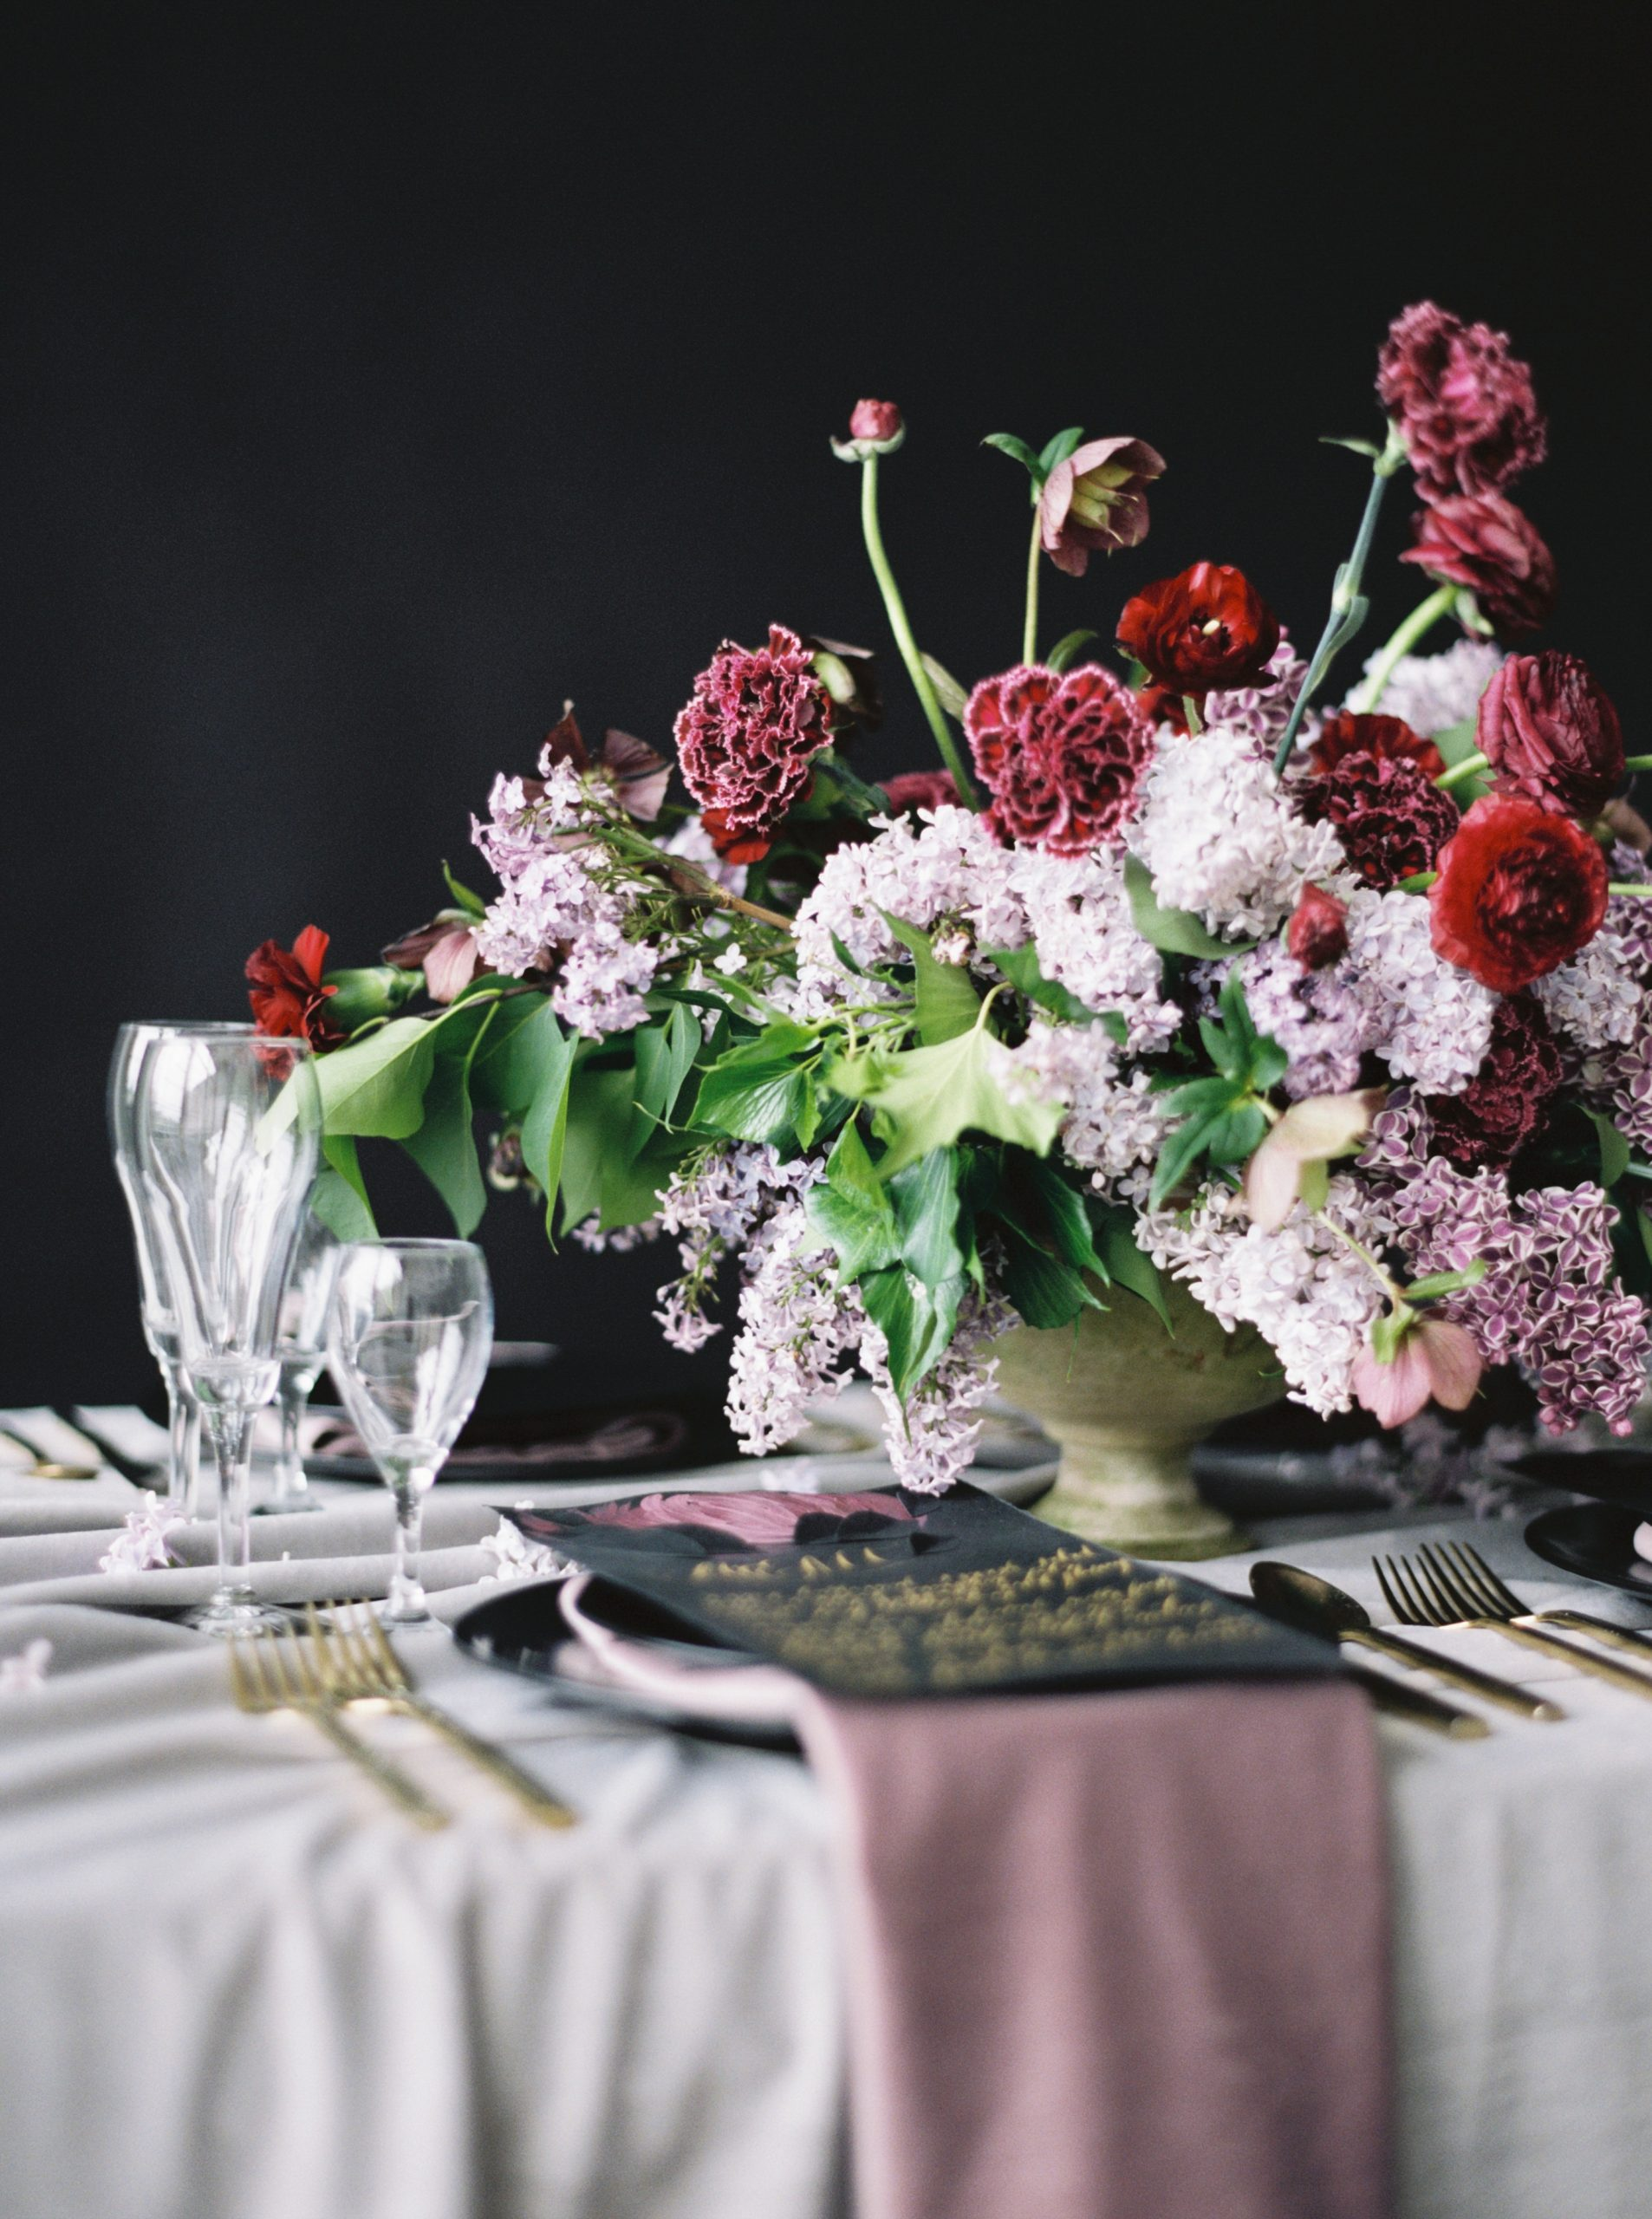 Moody table setting idea with red, lilac flowrs and a black menu design